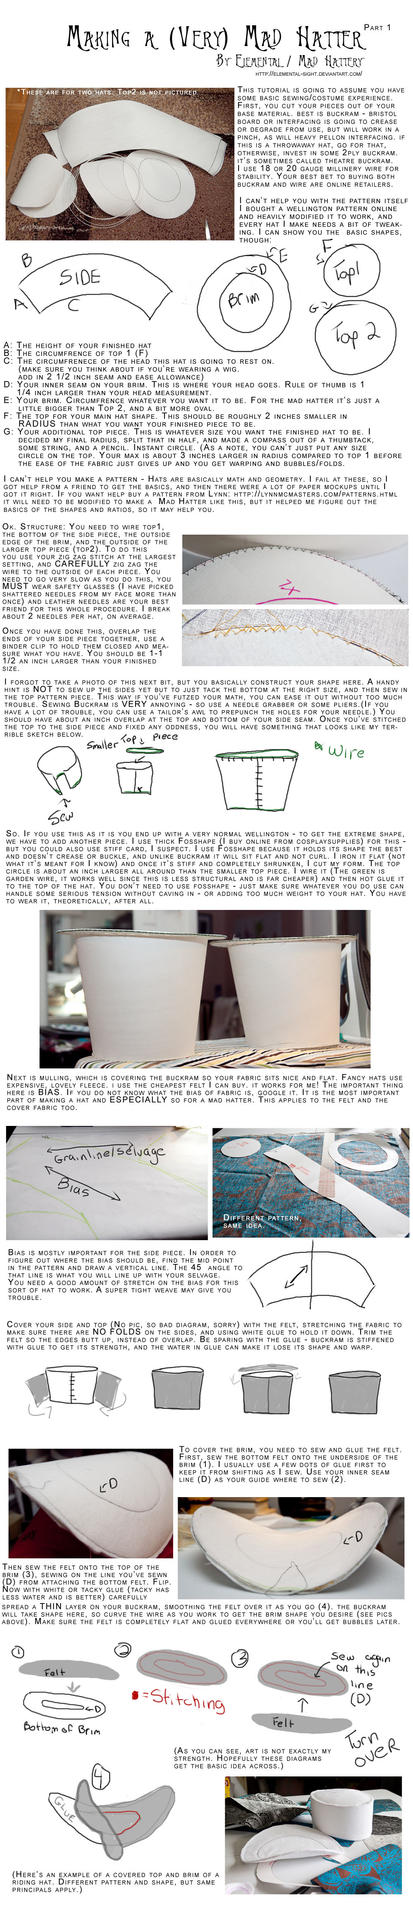 How to Make a Mad Hatter Part 1 by Elemental-Sight